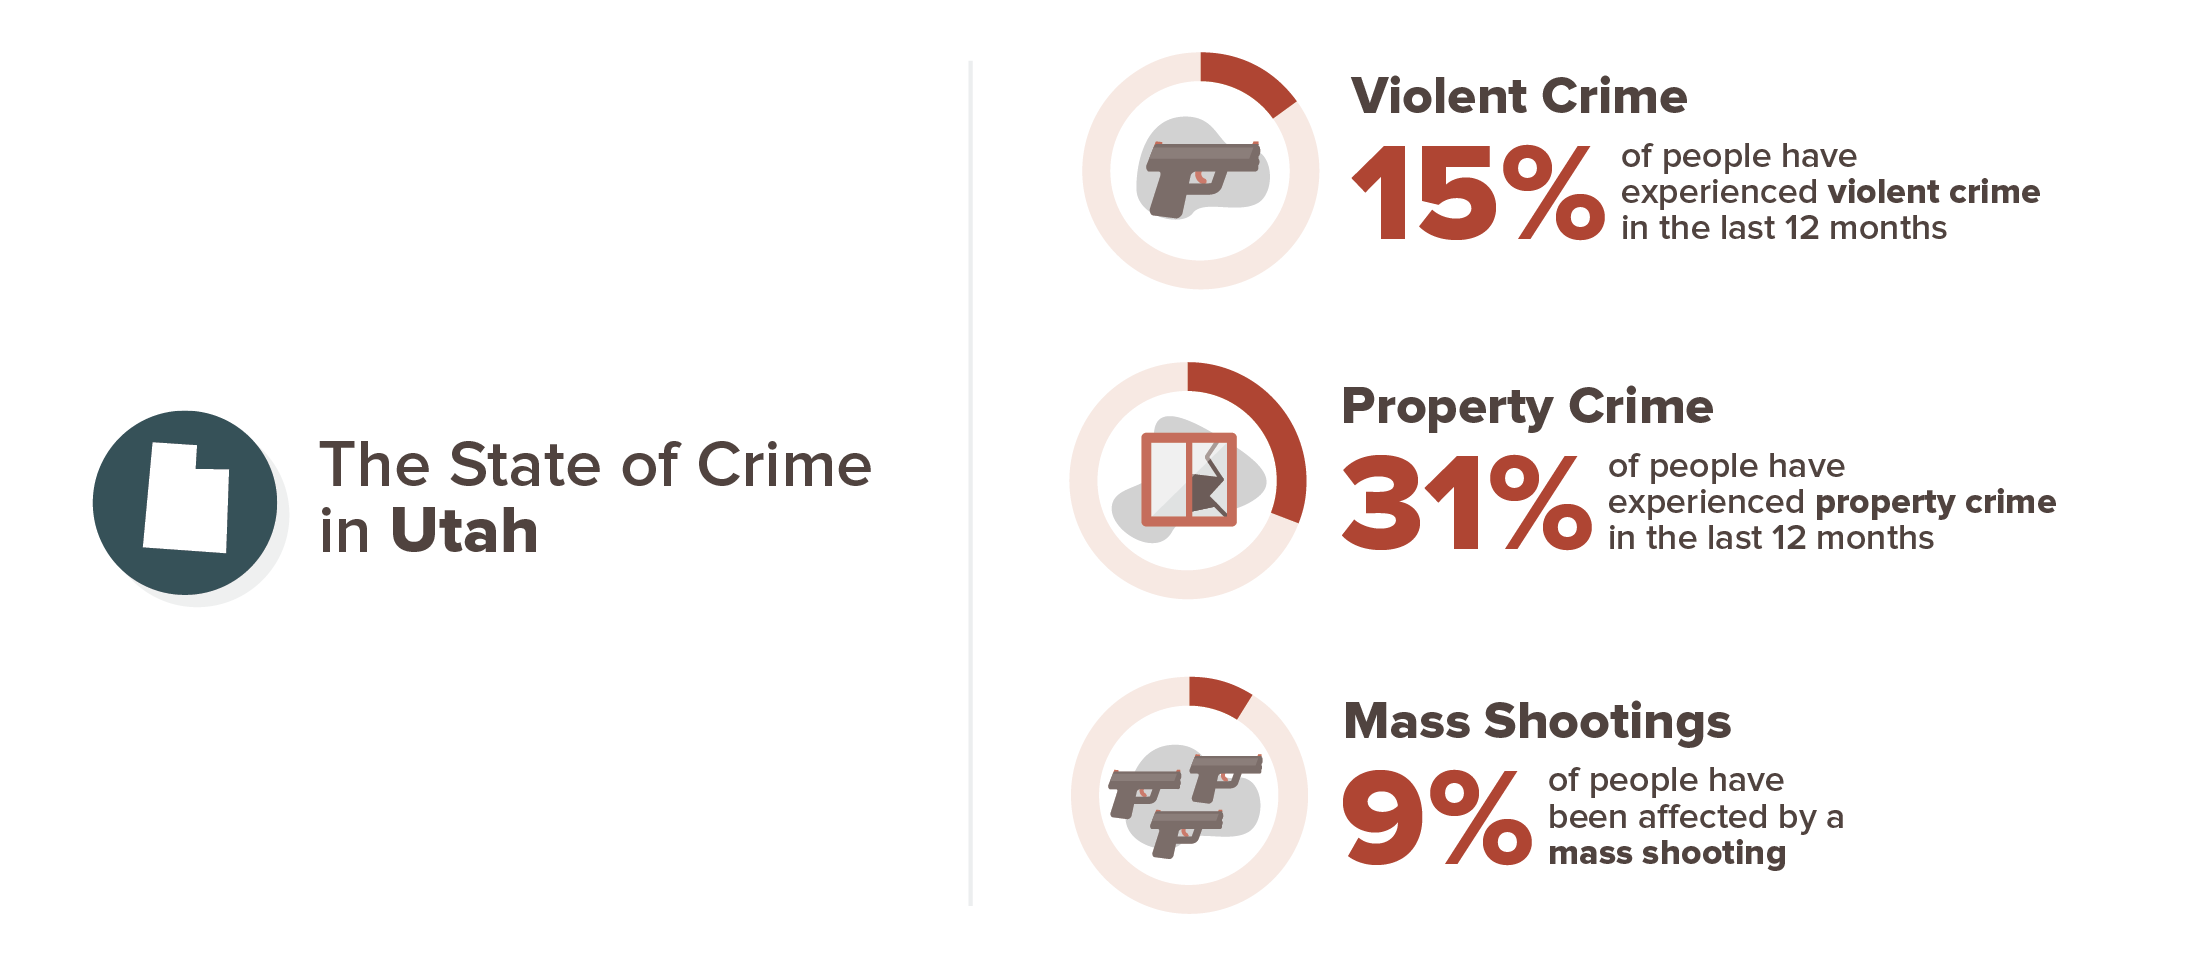 Utah crime experience infographic